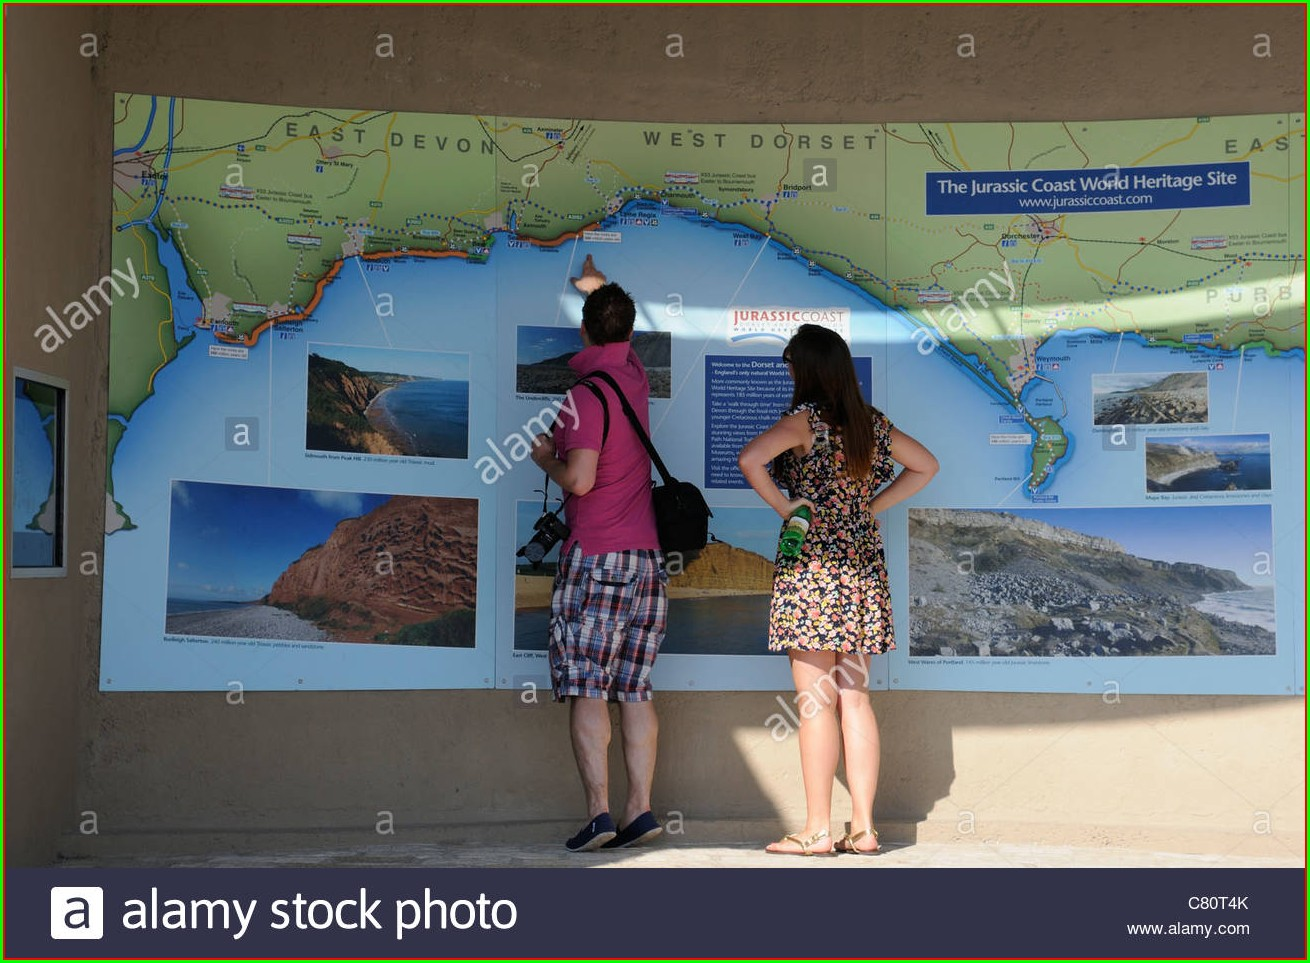 Jurassic Coast Map Uk